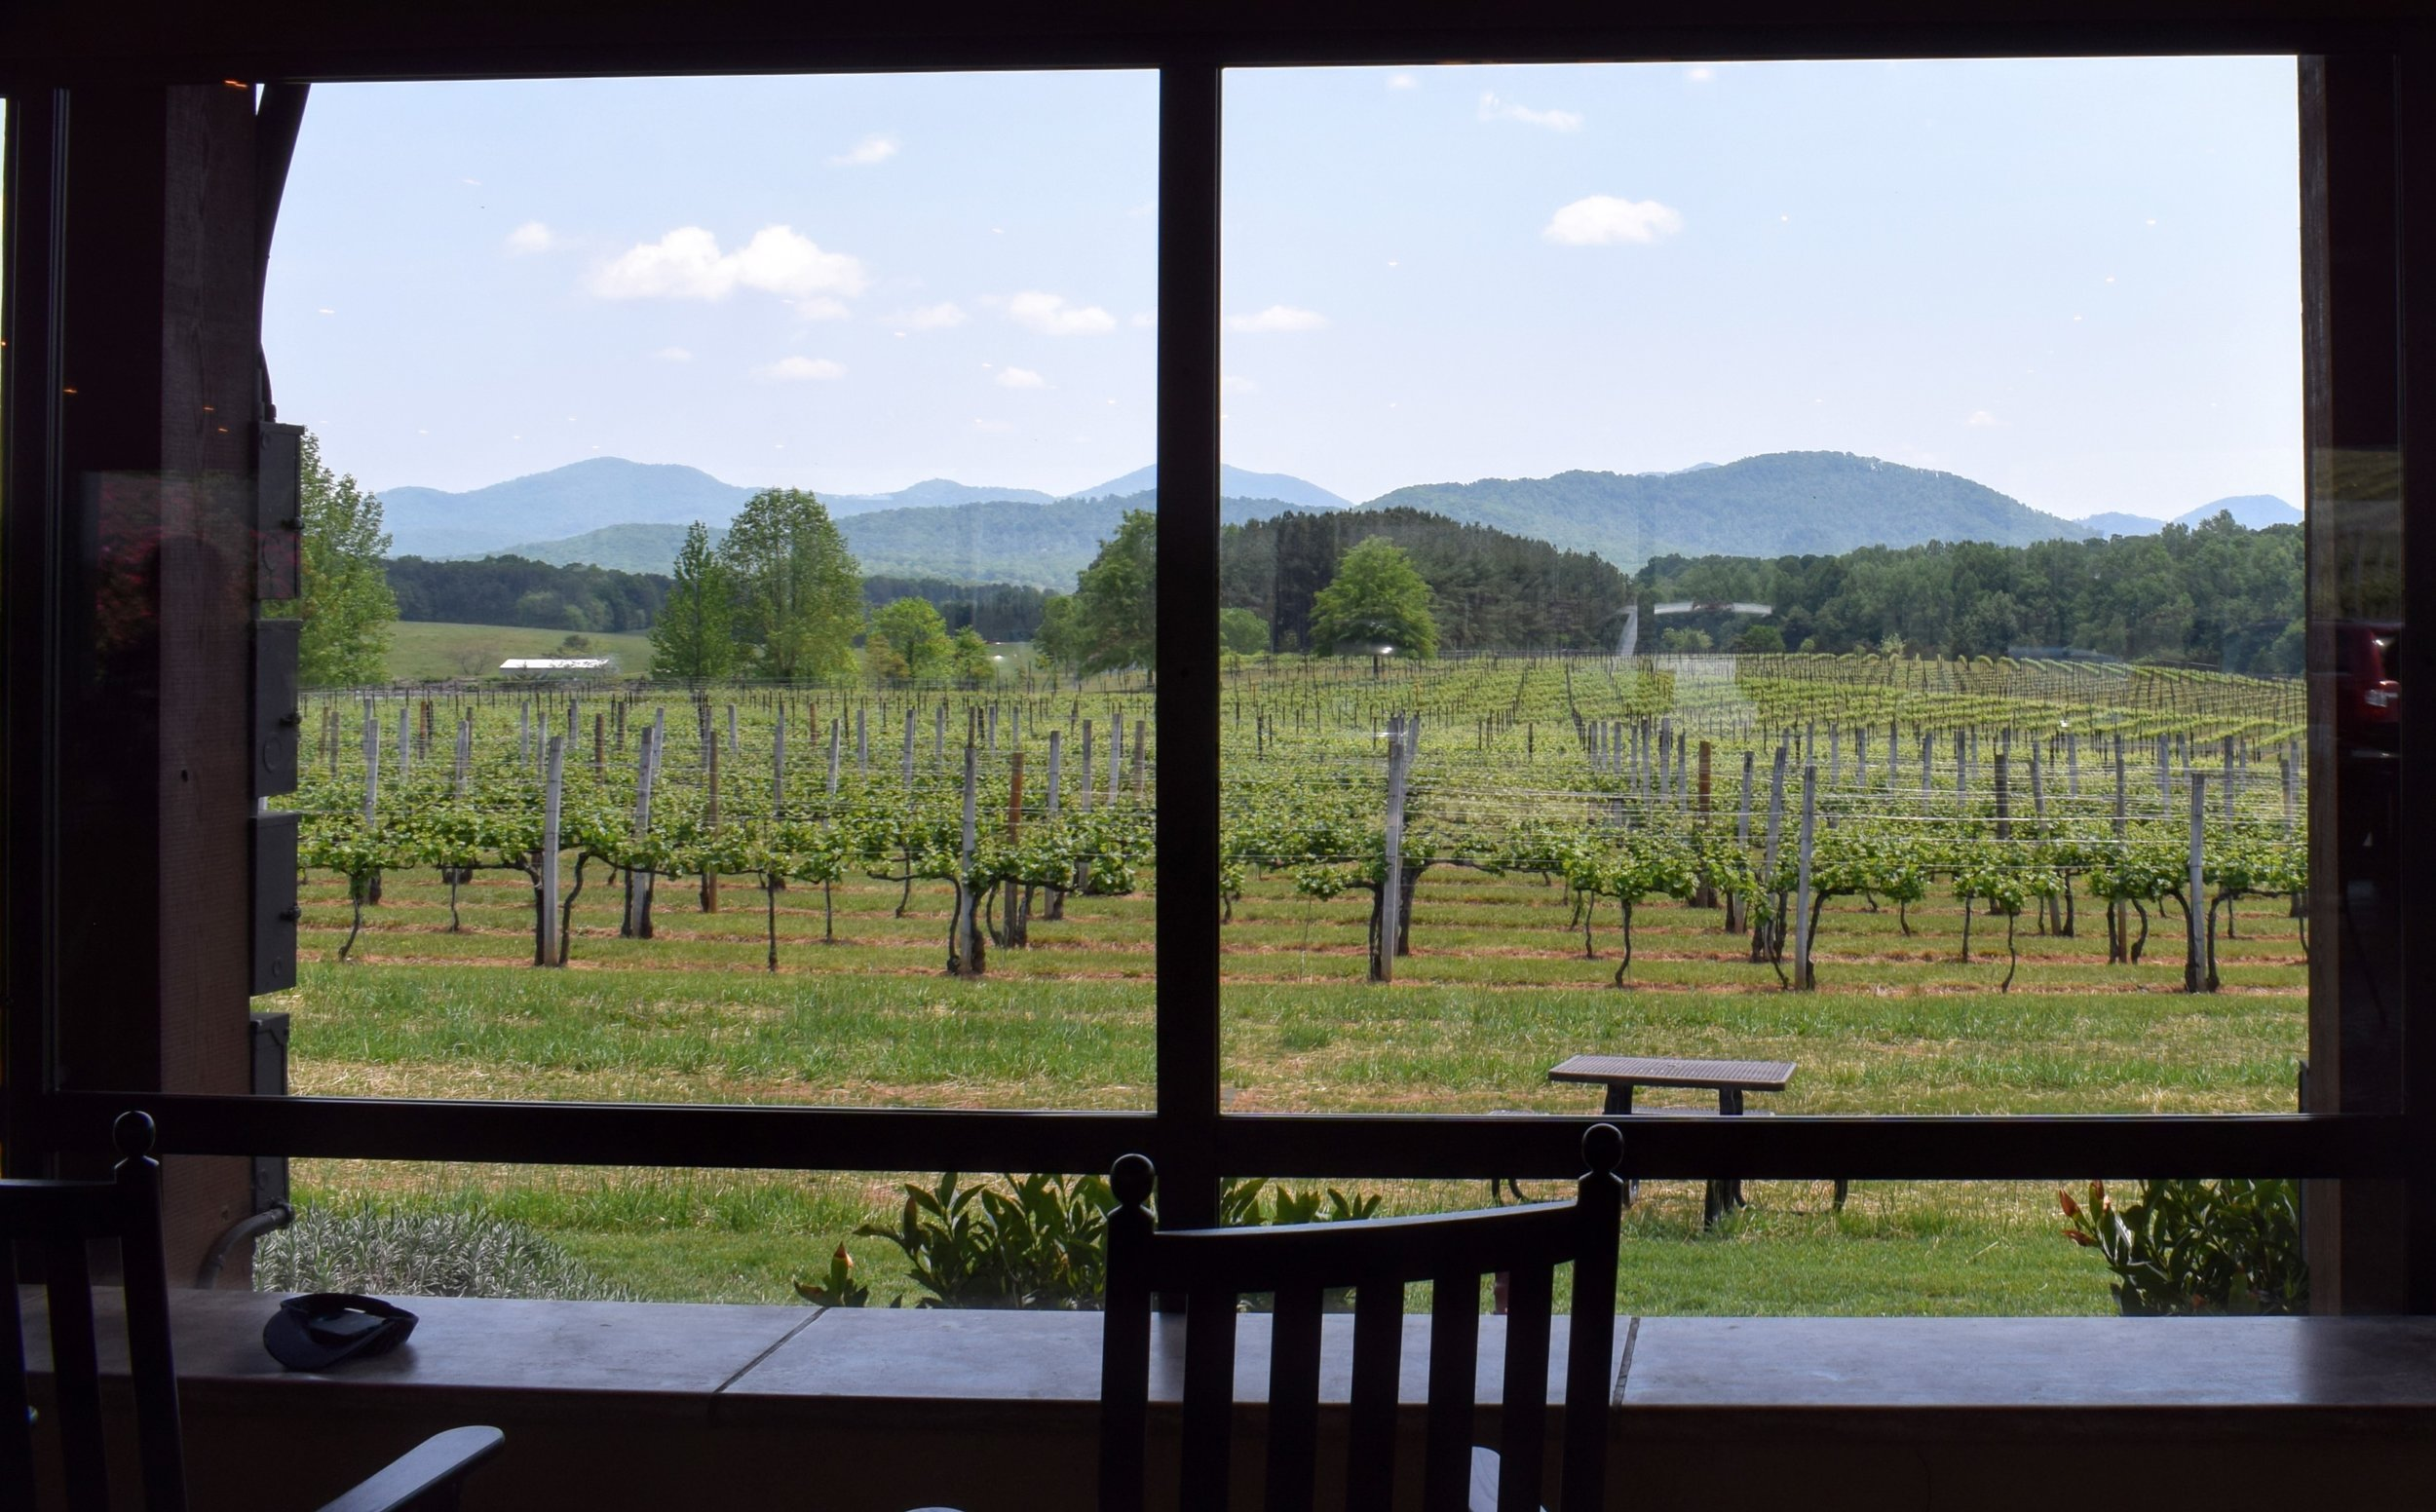 Afton Mountain Vineyards as seen from inside their Pavilion.